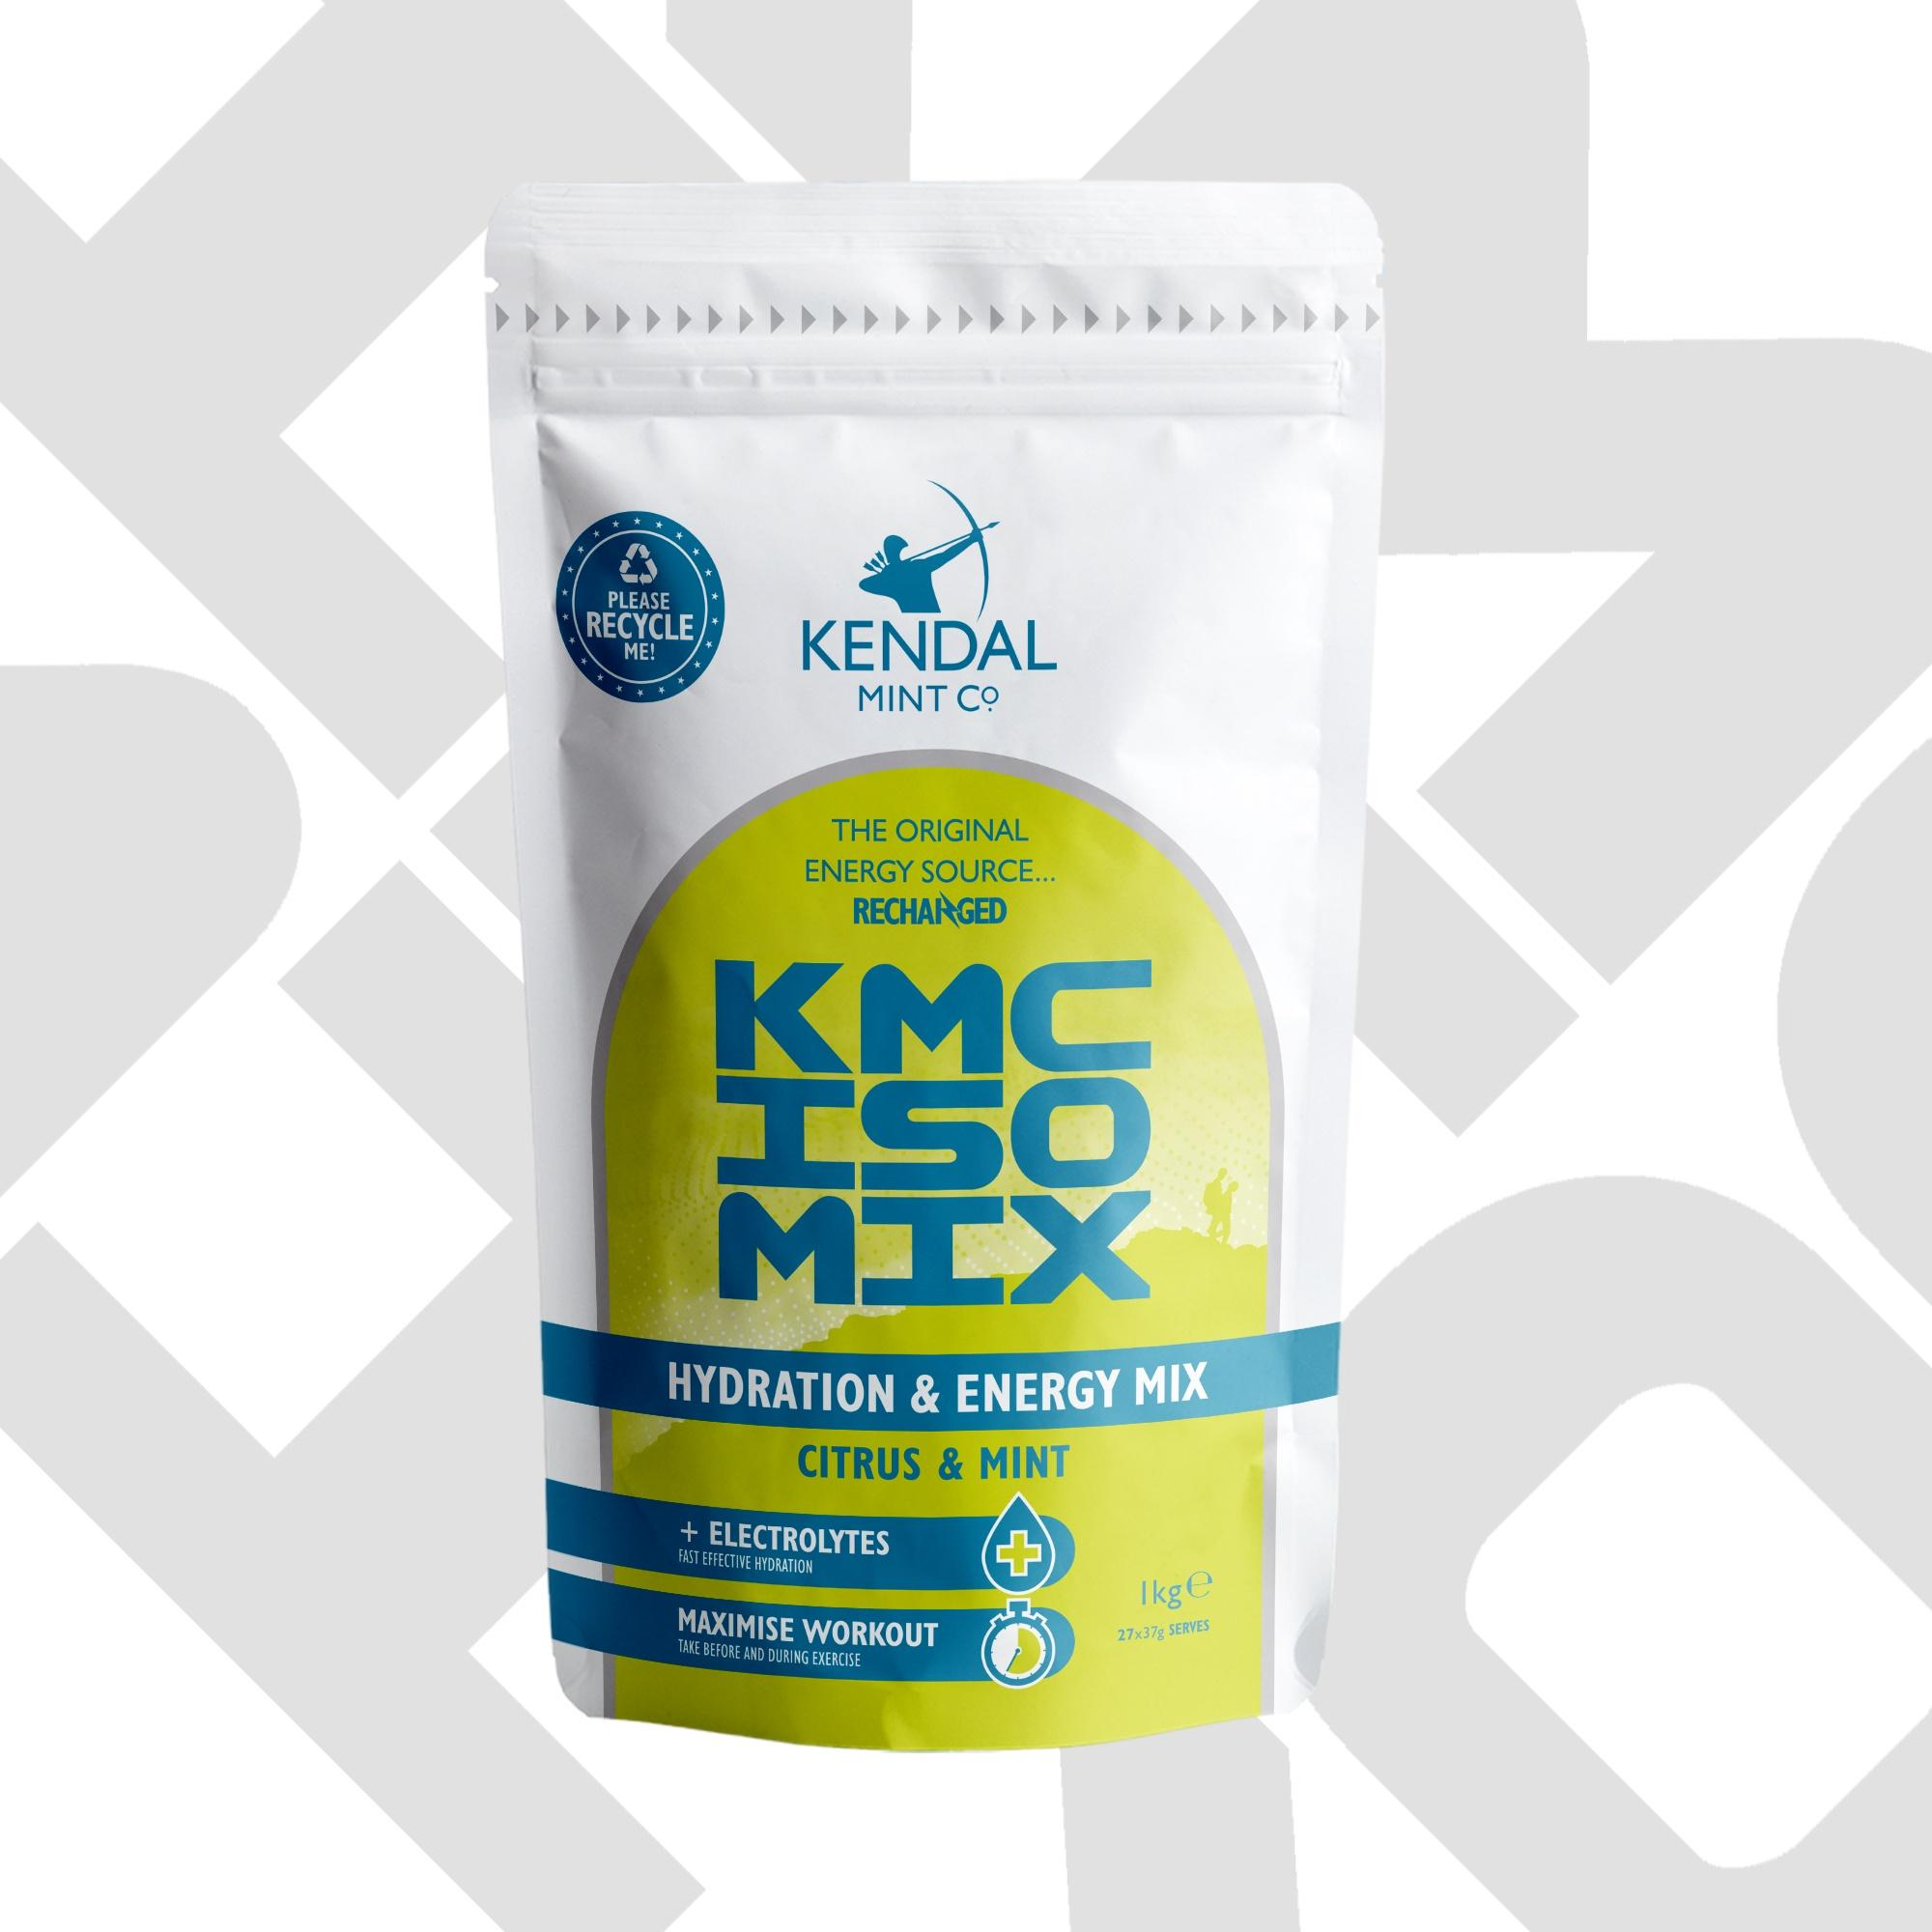 KMC ISO MIX isotonic hydration energy drink mix citrus & mint flavour